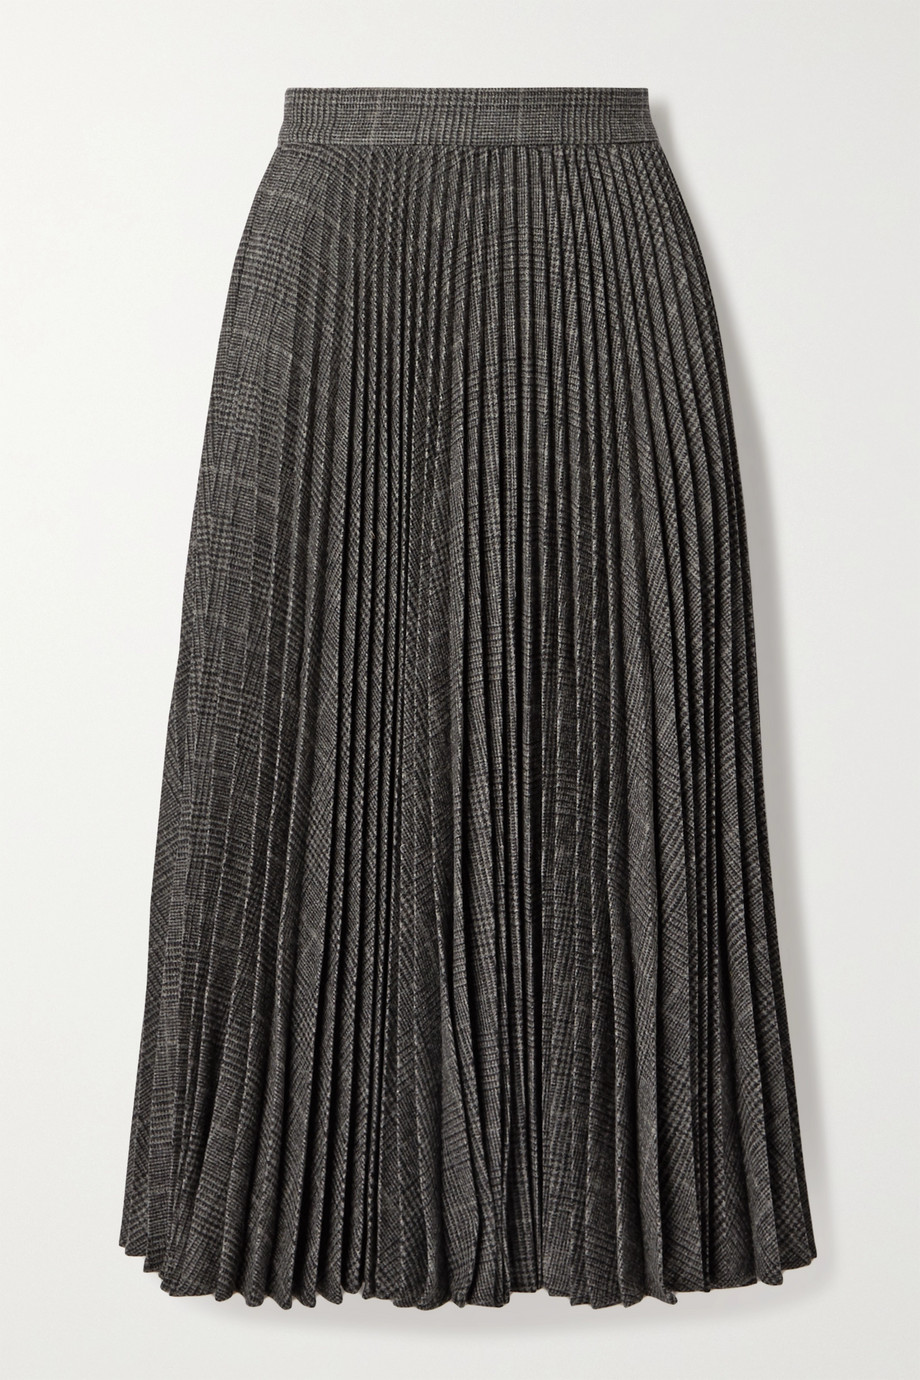 Michael Kors Collection Pleated houndstooth wool-blend midi skirt